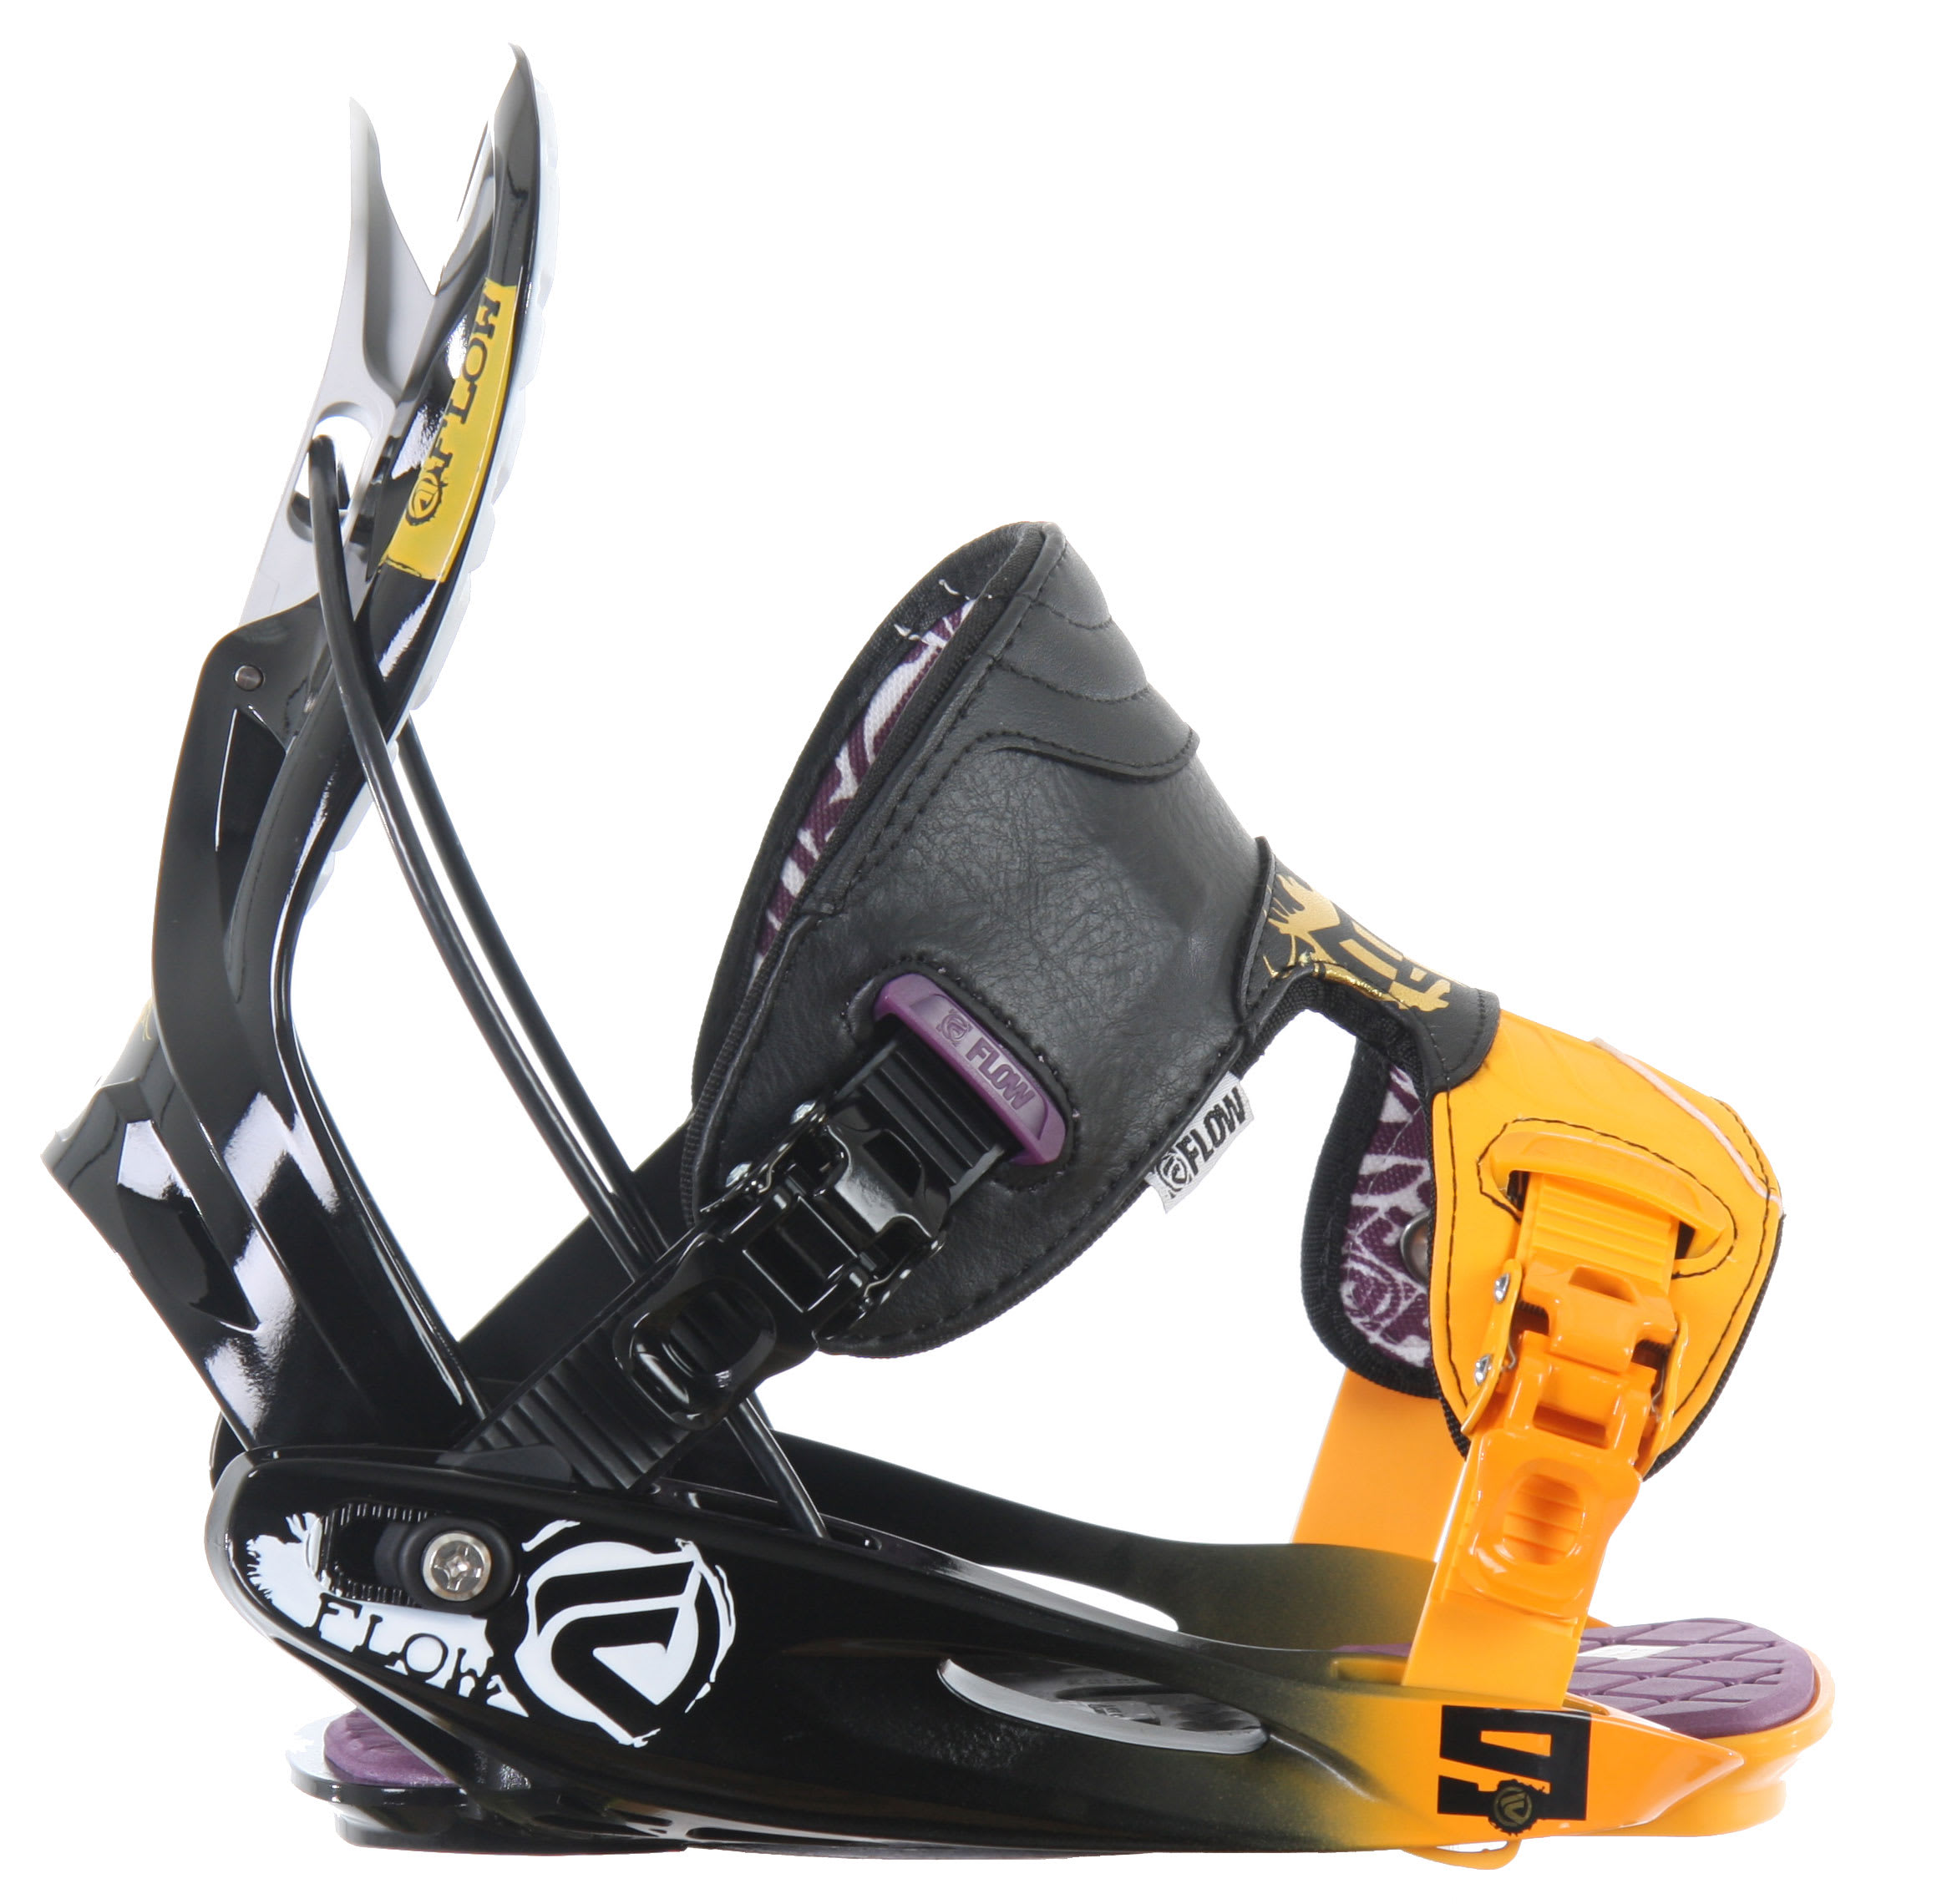 On Sale Flow M9 Snowboard Bindings Up To 70% Off